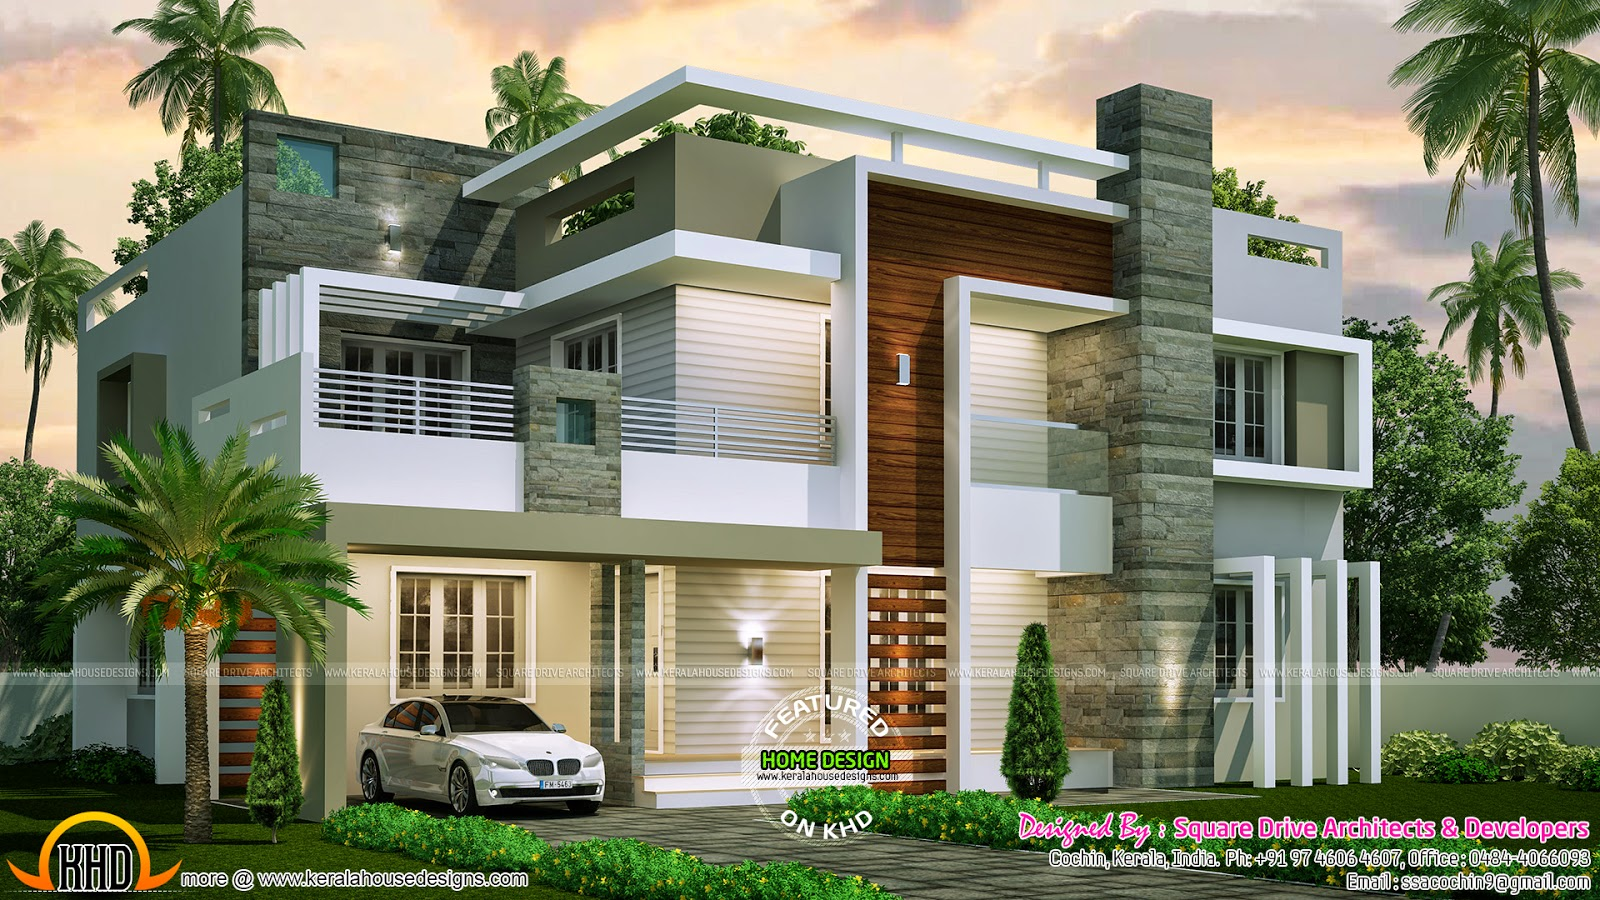 4 bedroom contemporary home design kerala home design 4 bedroom modern house plans